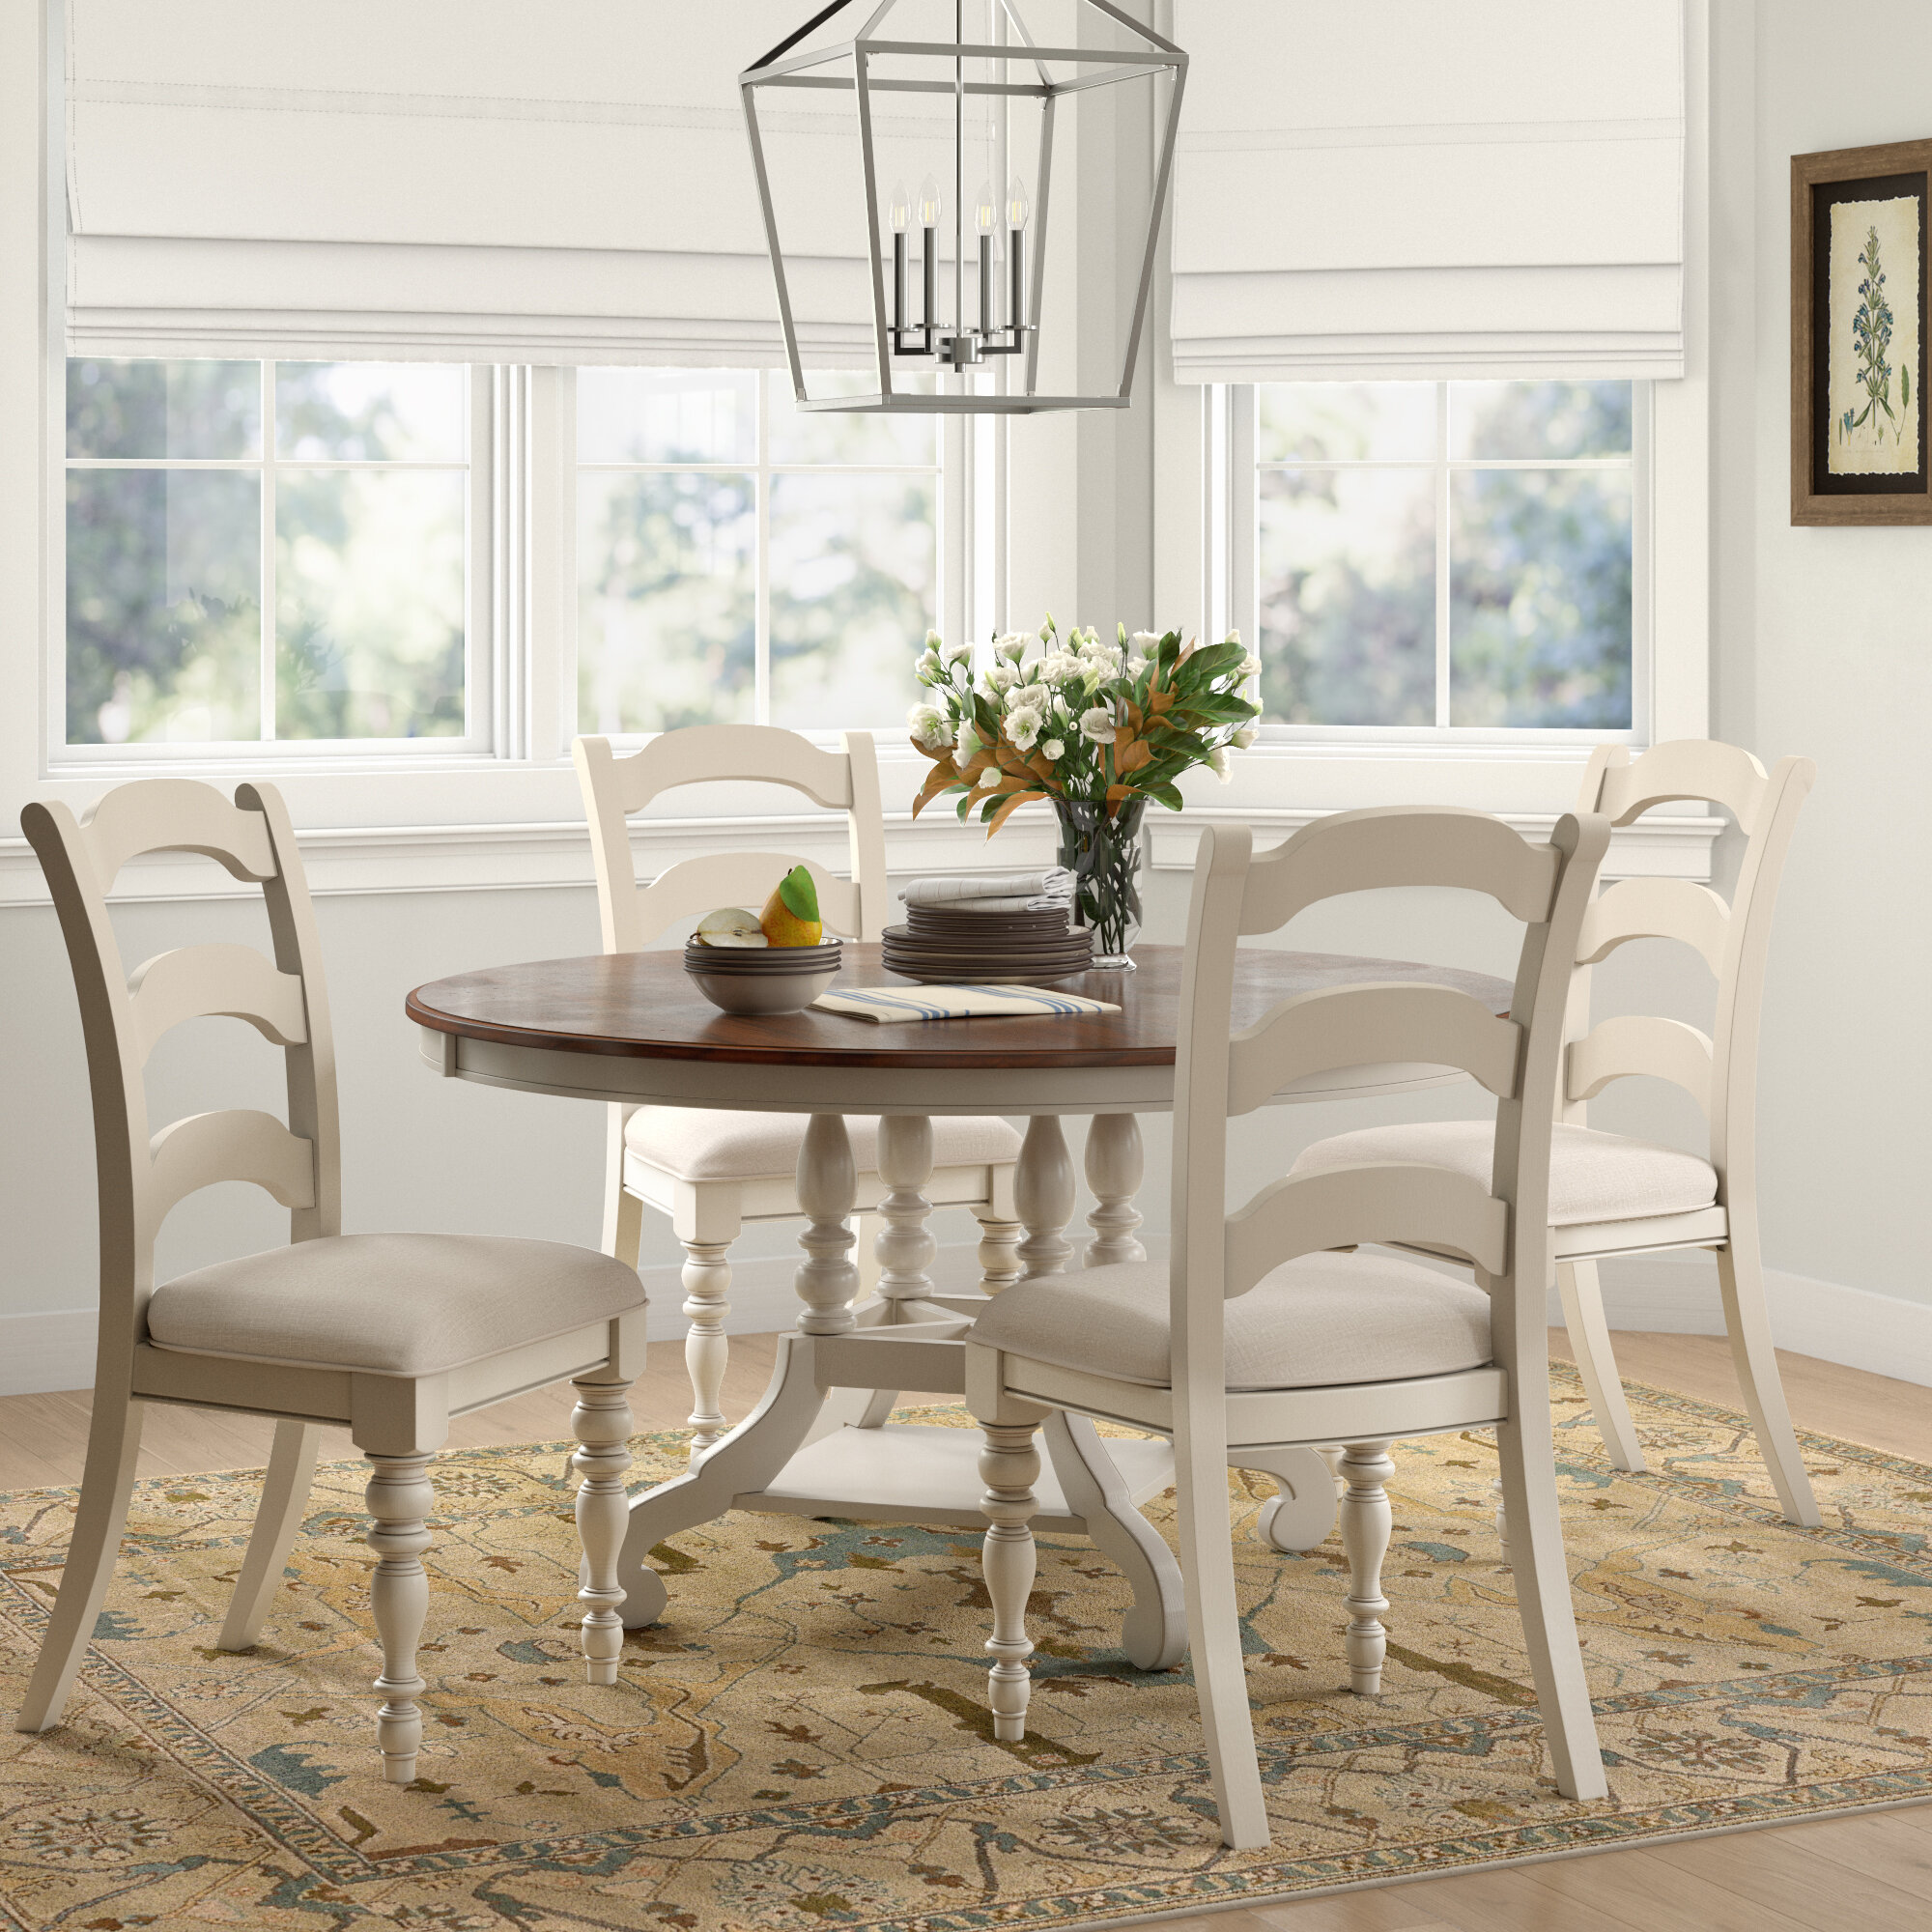 Dalton Extending Dining Table By Birch Lane Dining Room